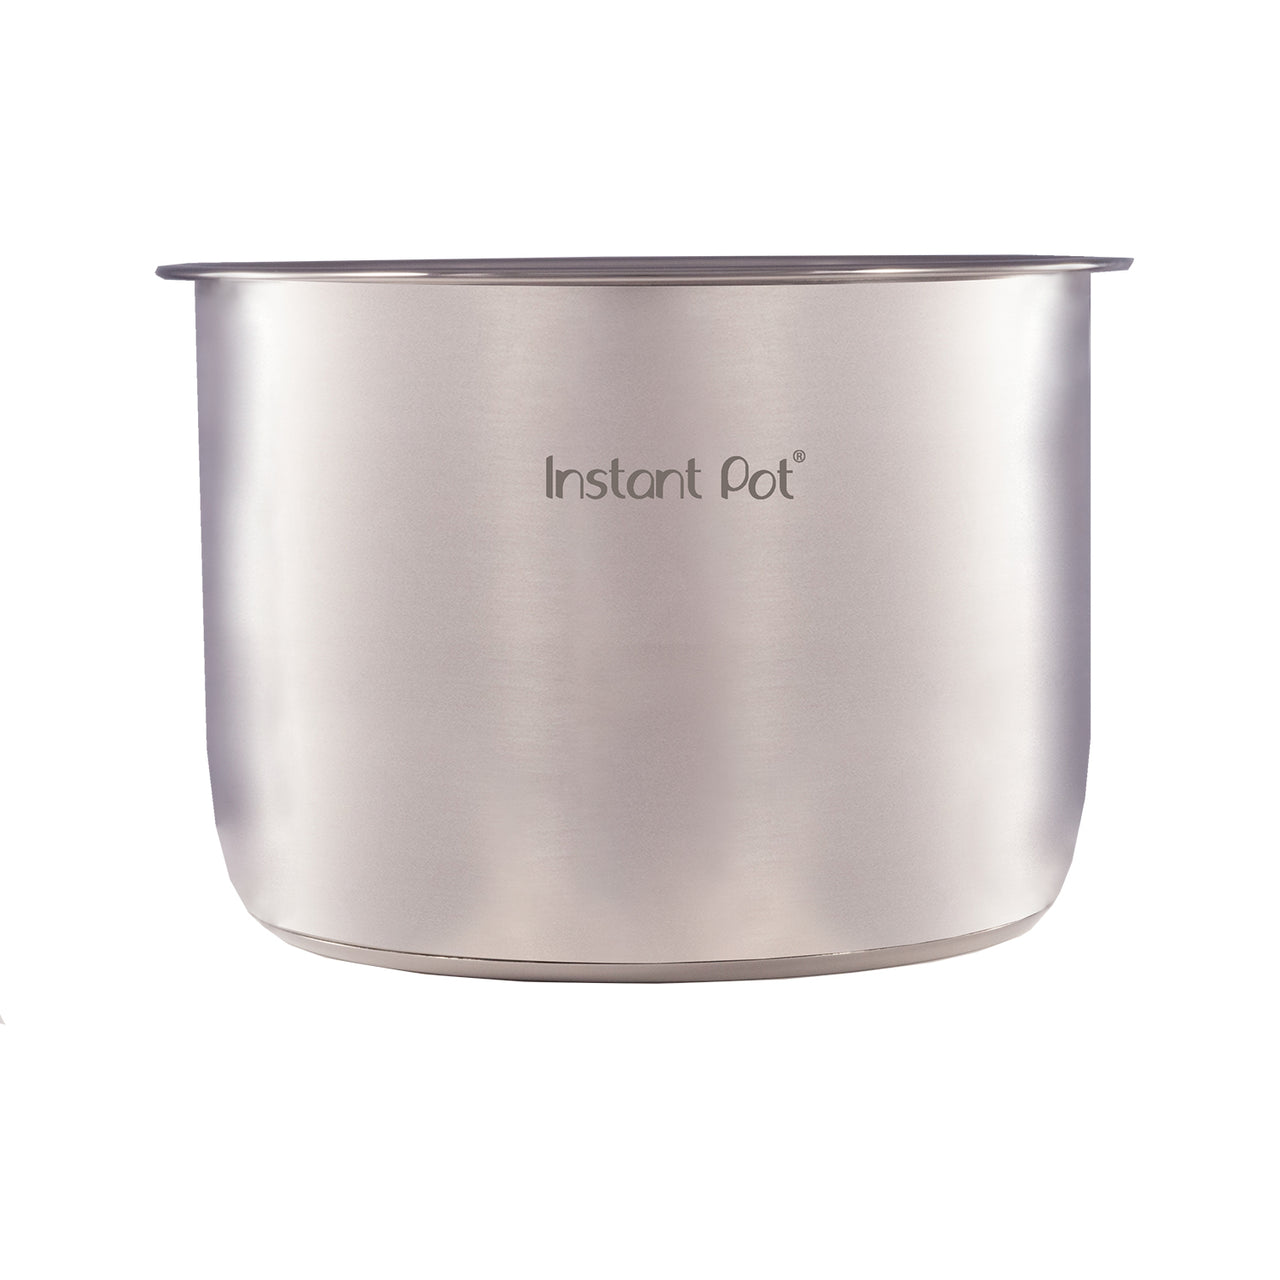 Instant Pot Stainless Steel Inner Pot 8 Quart